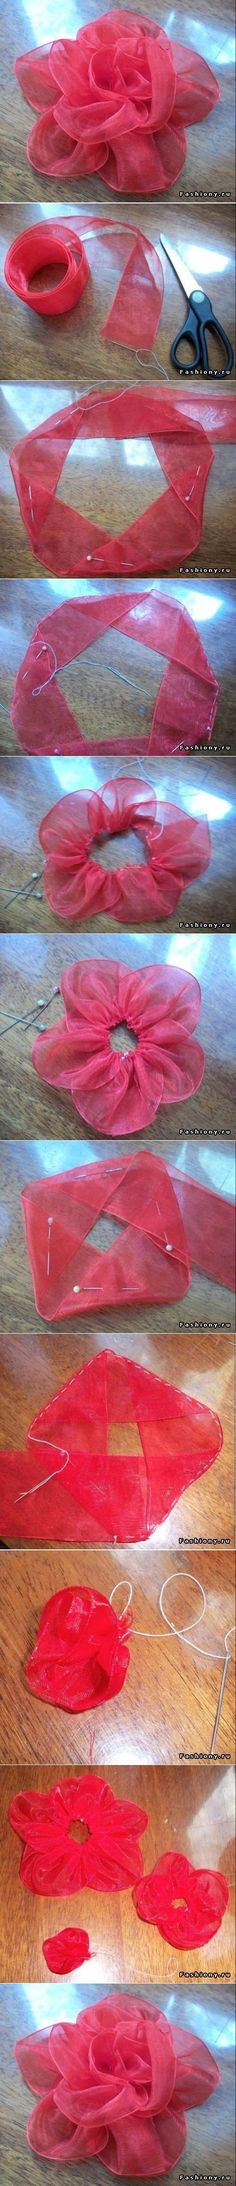 DIY Ribbon Tape Flower by marisa.tellez.73